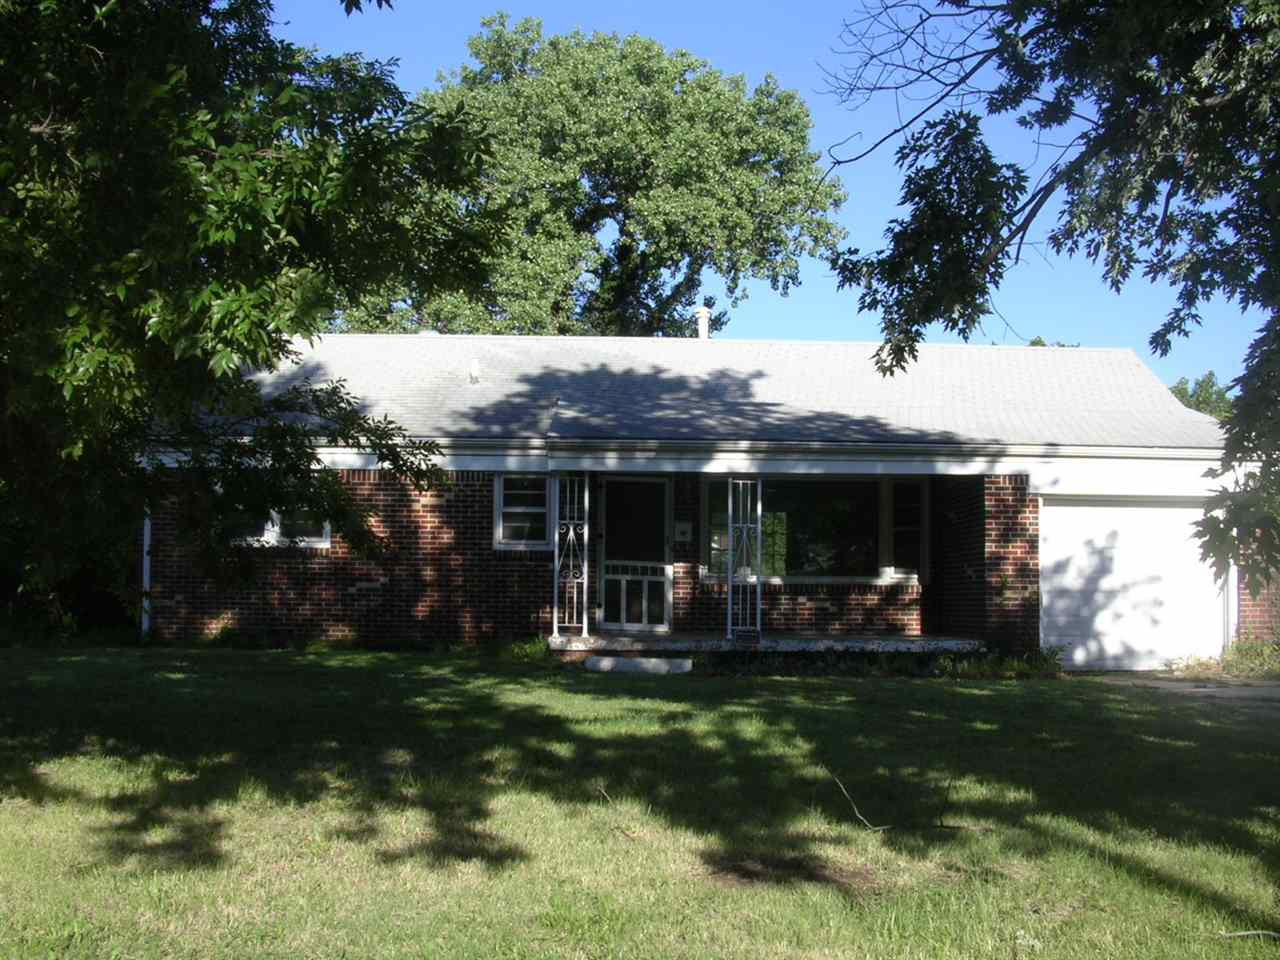 2451 S Pattie, Wichita, KS 67216